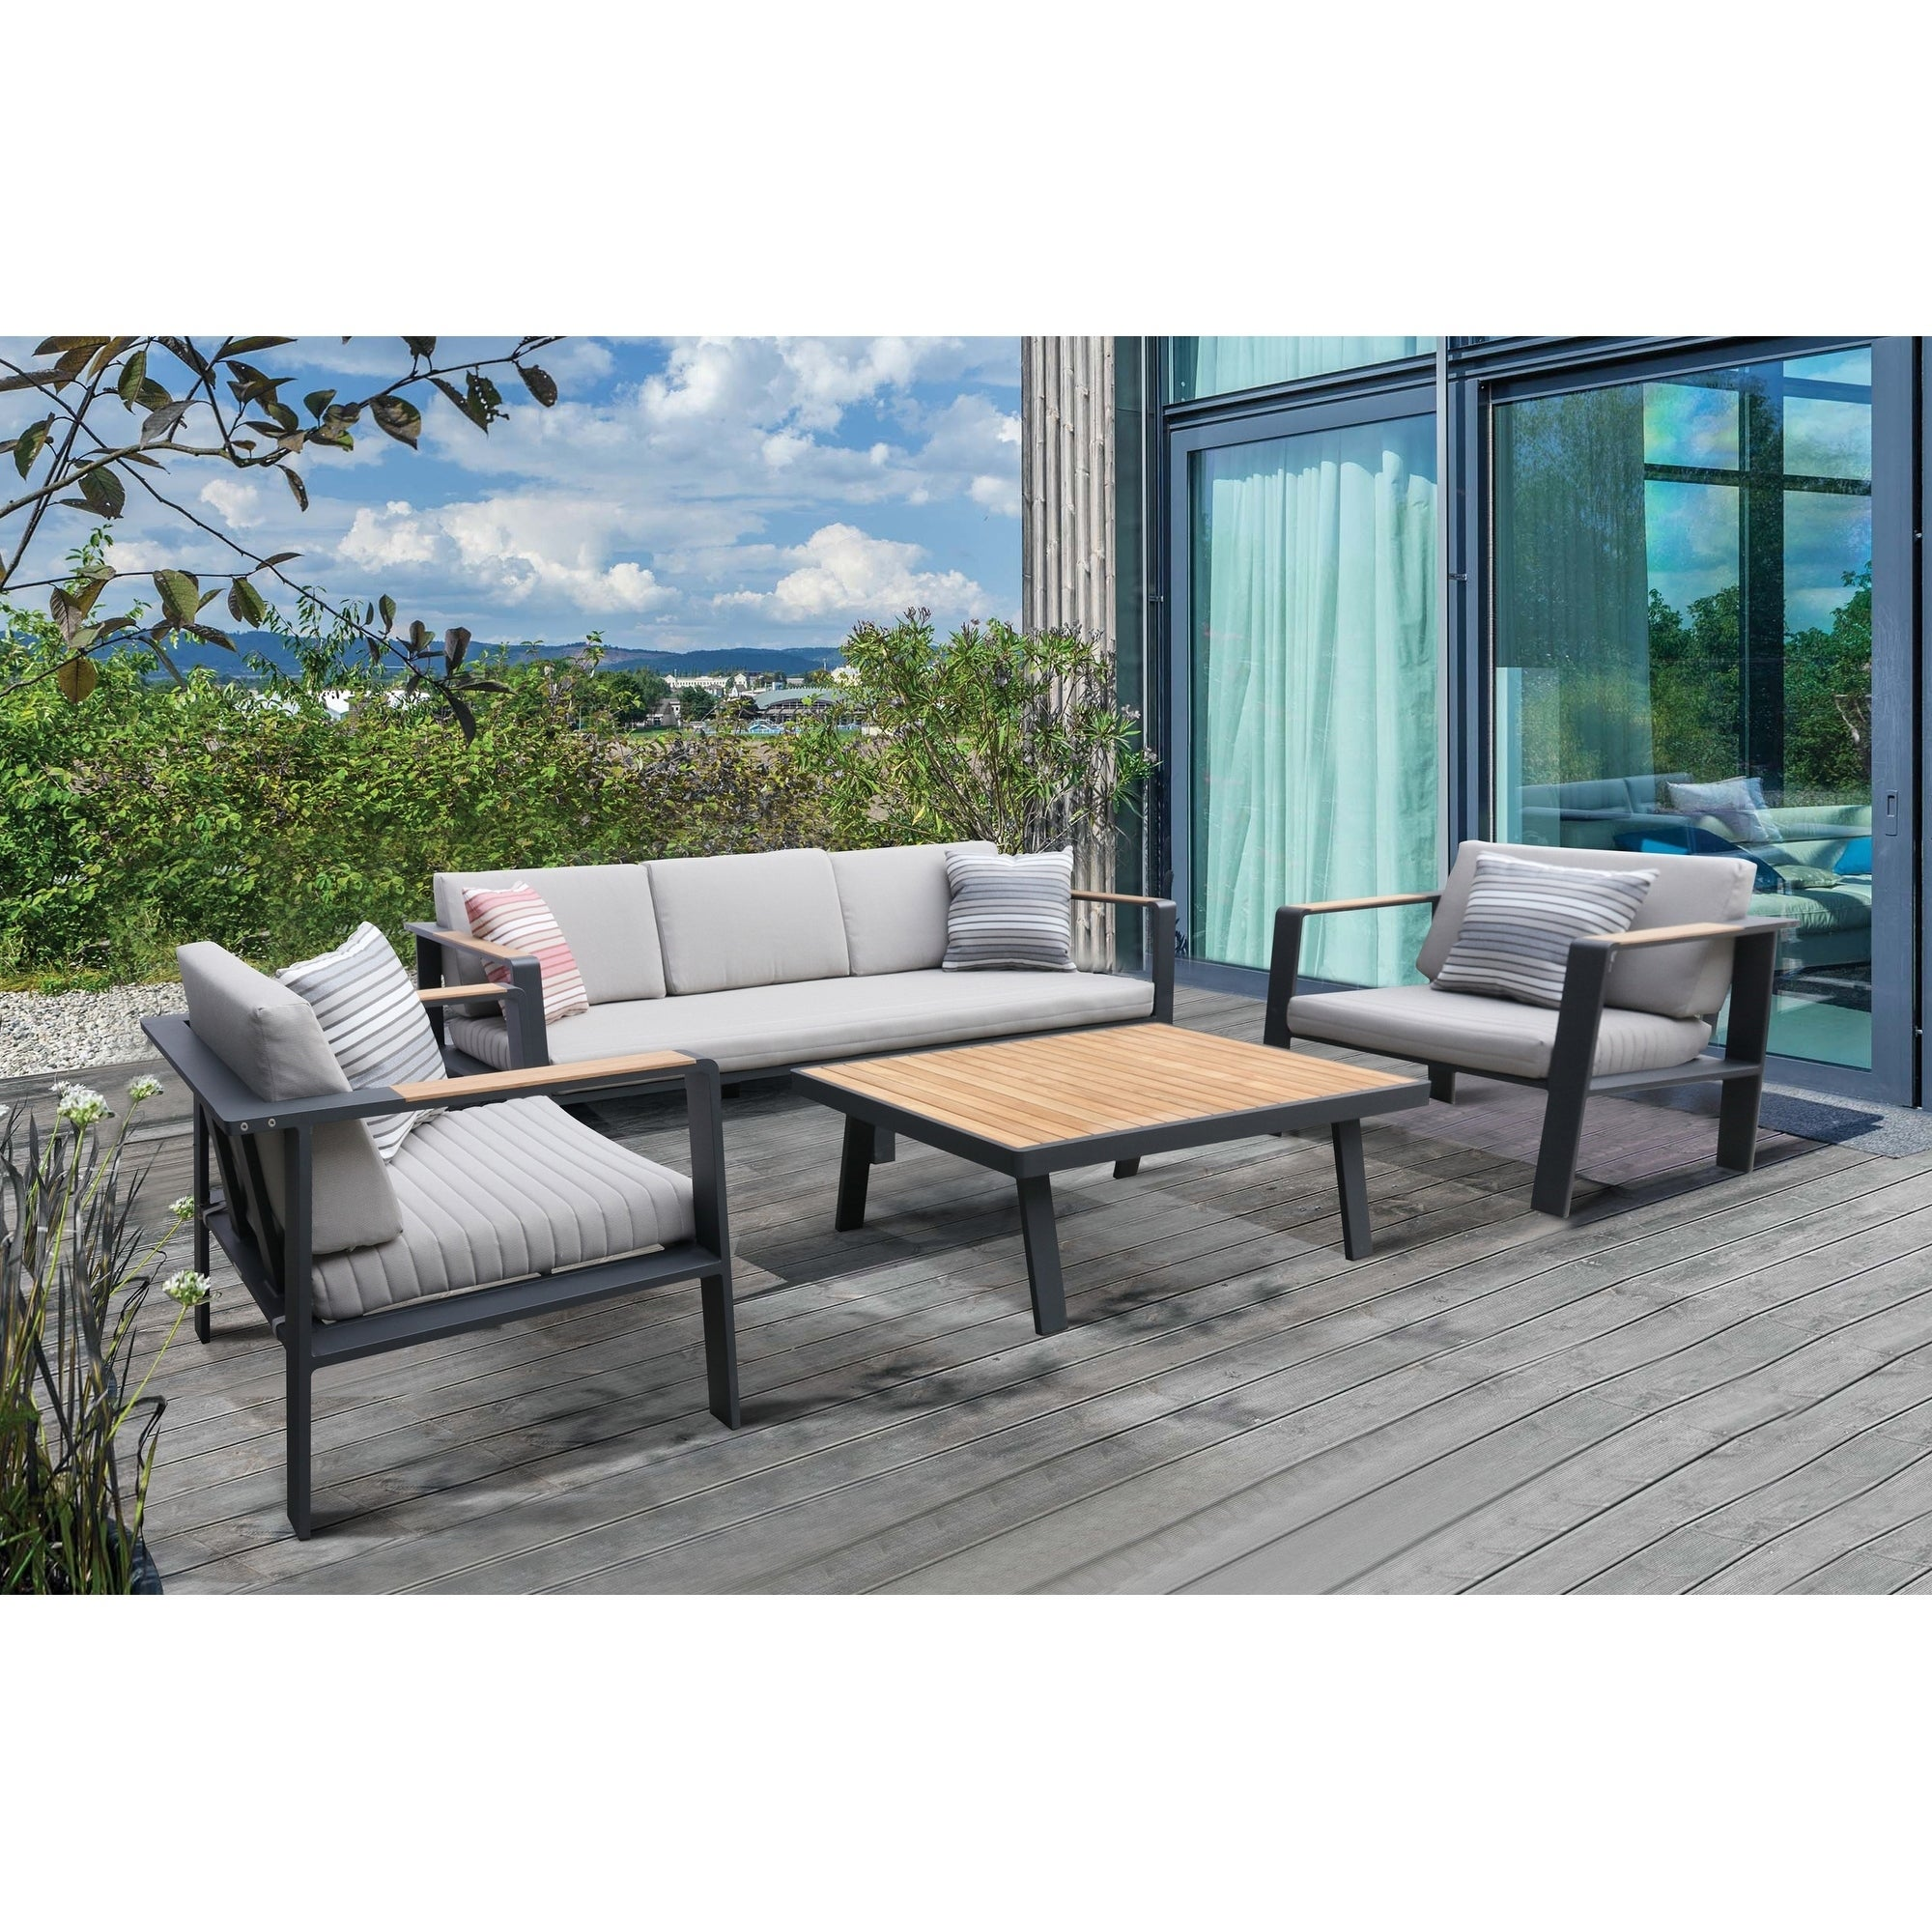 Armen living nofi 4 piece outdoor patio set in gray finish with taupe cushions and teak wood